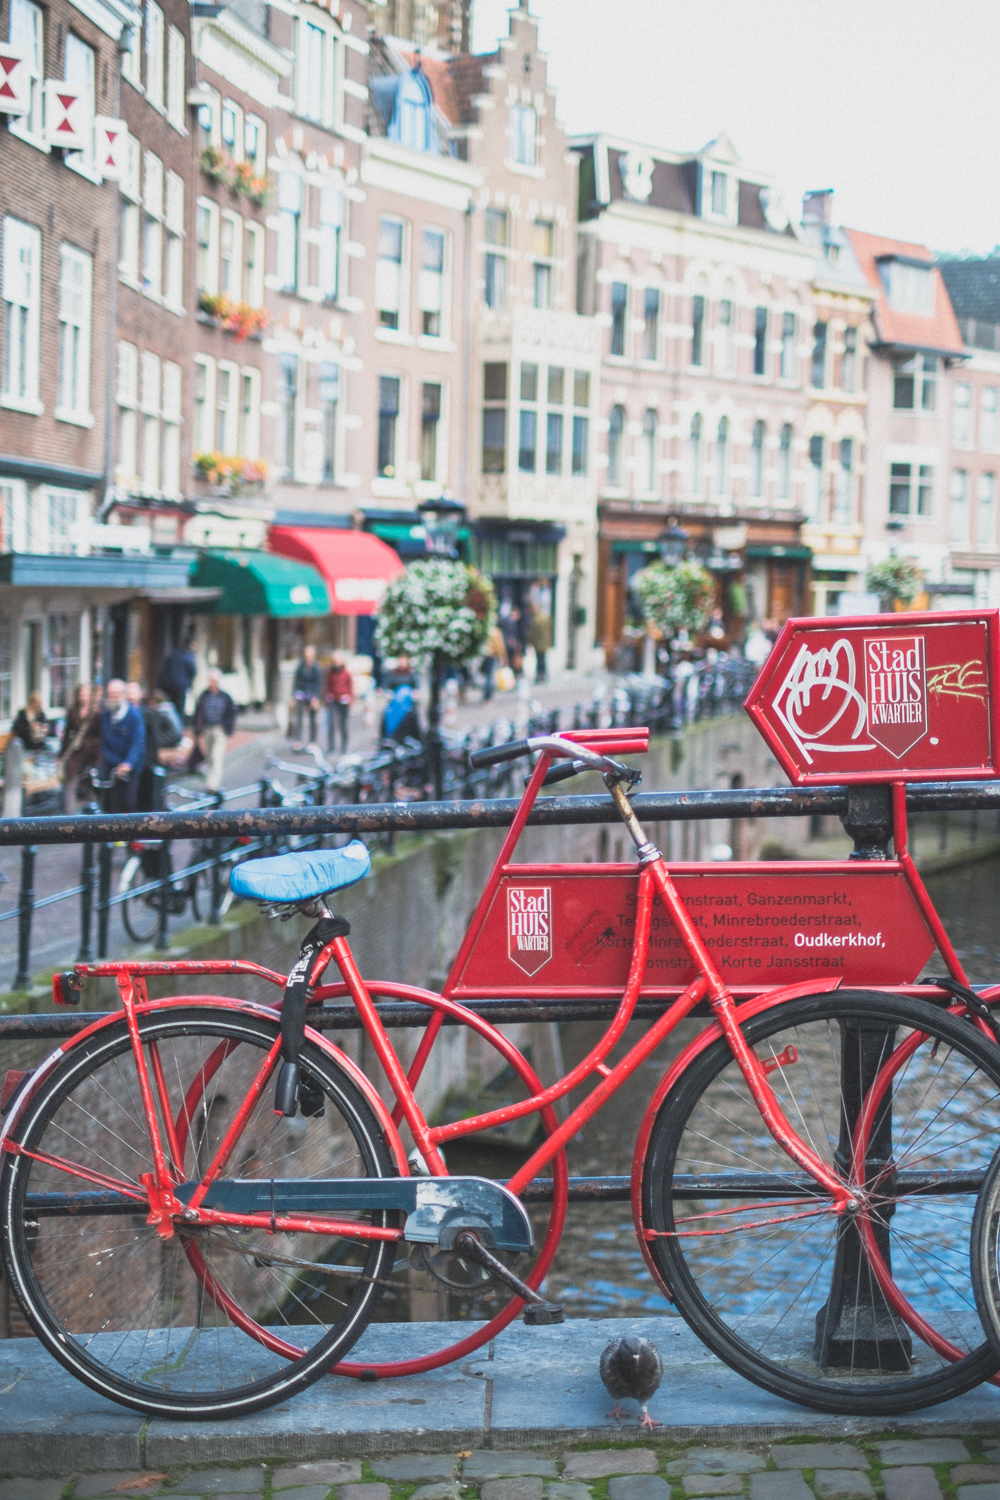 Biking is common as public transportation in Utrecht as it is throughout the country.